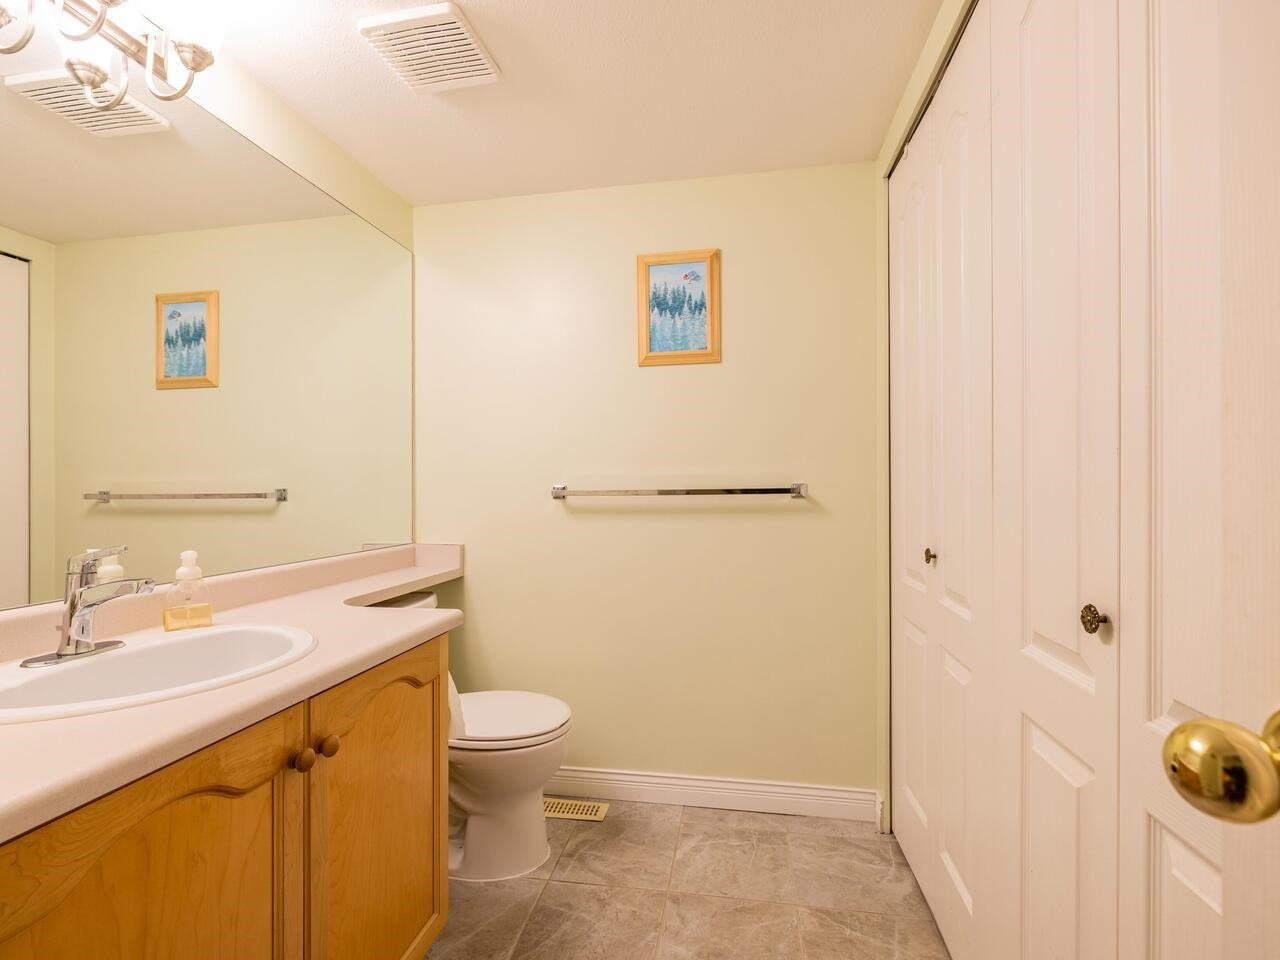 11 15875 84 AVE AVENUE - Fleetwood Tynehead Townhouse for sale, 3 Bedrooms (R2574652) - #15